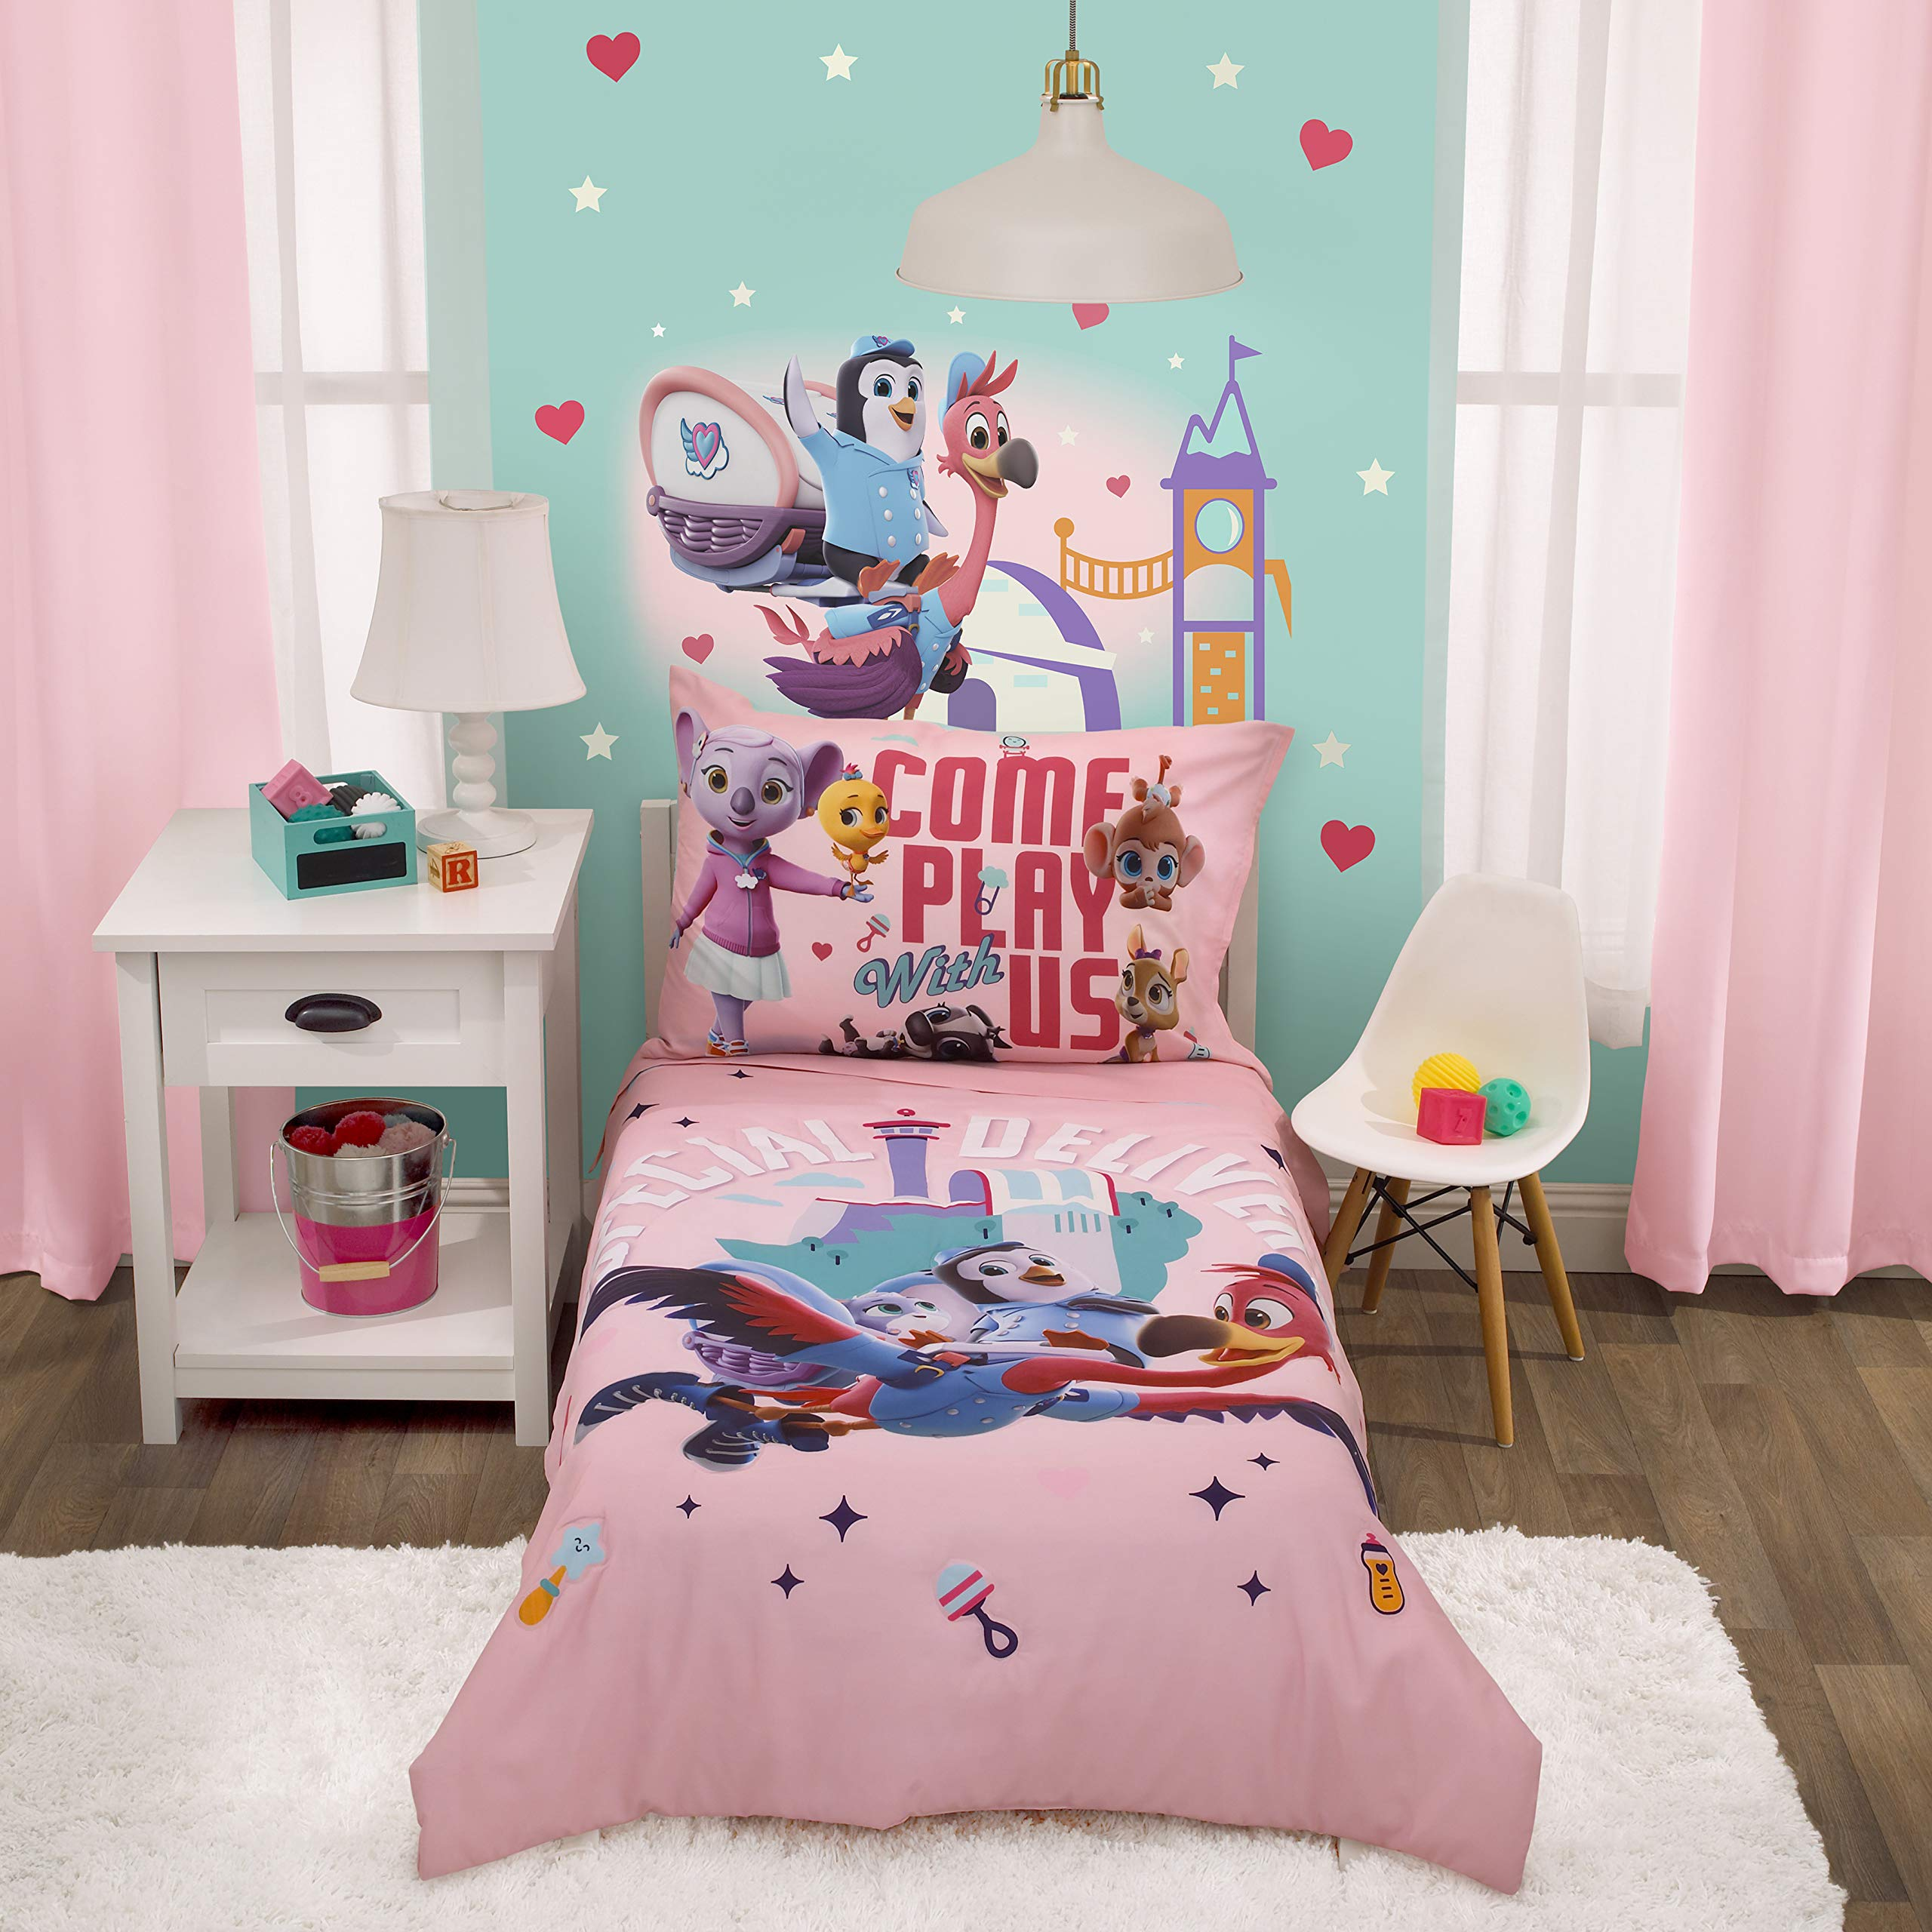 Disney T.O.T.S Special Delivery Pink, Teal, Purple & Brown 4Piece Toddler Bed Set - Comforter, Fitted Bottom Sheet, Flat T...